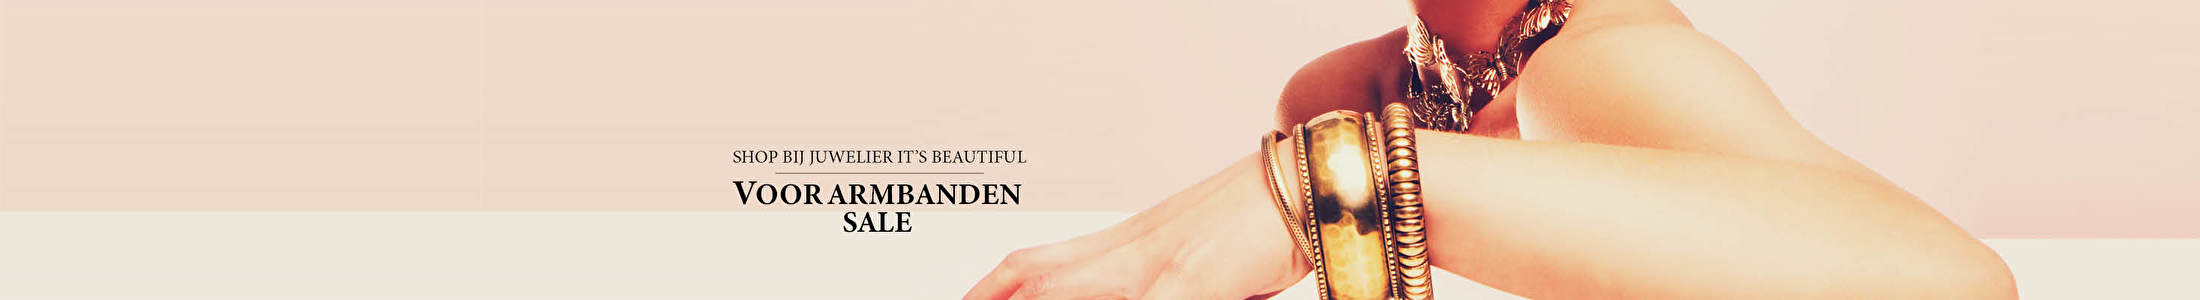 Shop bij juwelier It's Beautiful voor armbanden sale